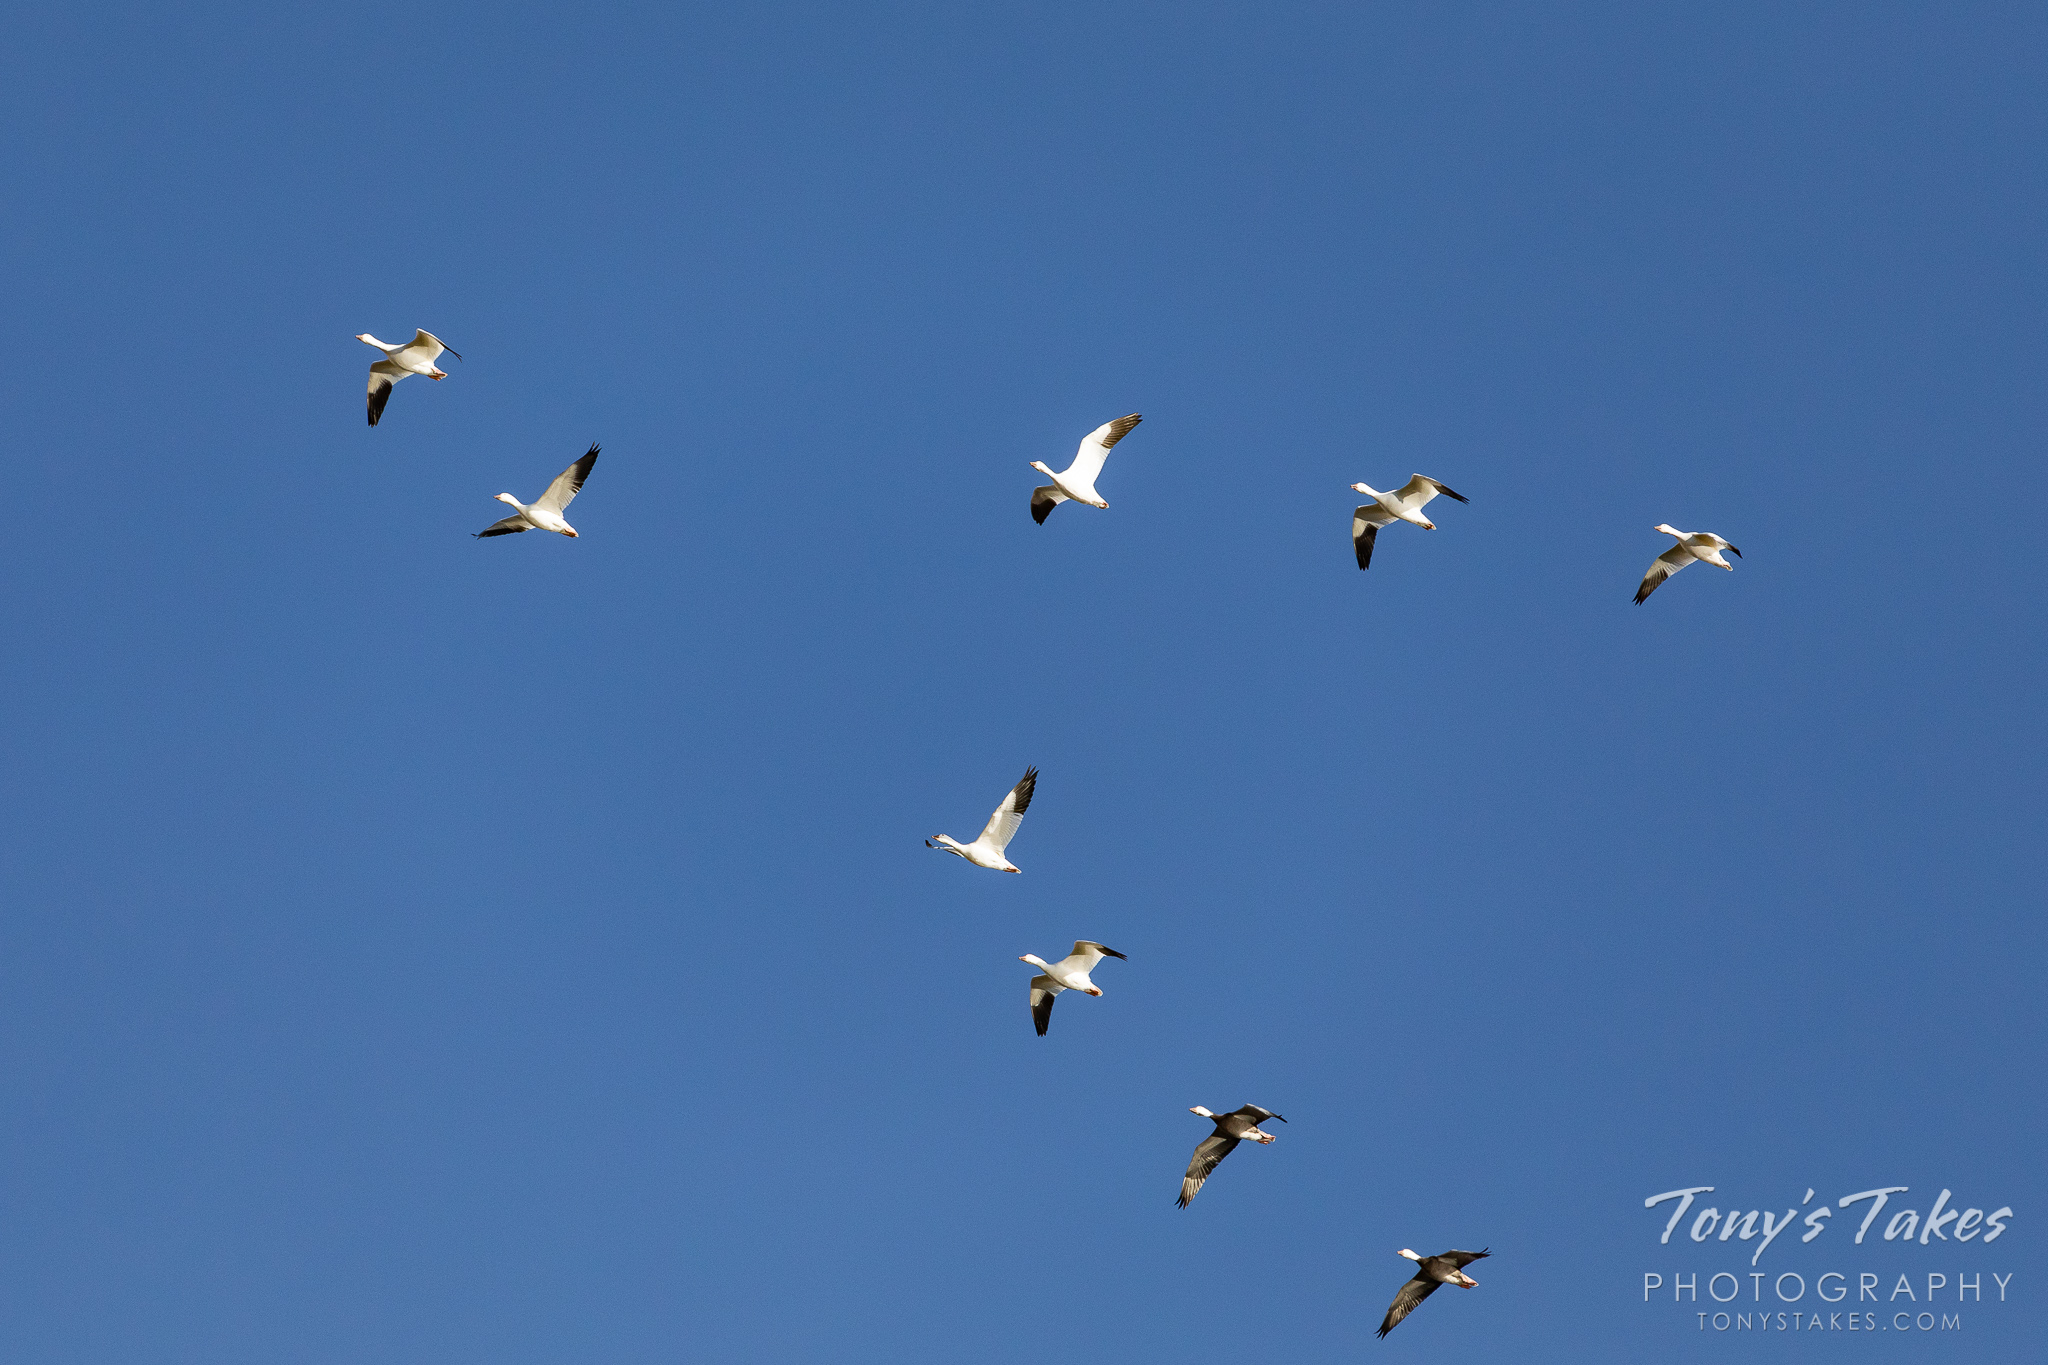 Snow geese in the skies over eastern Colorado as they migrate north. (© Tony's Takes)